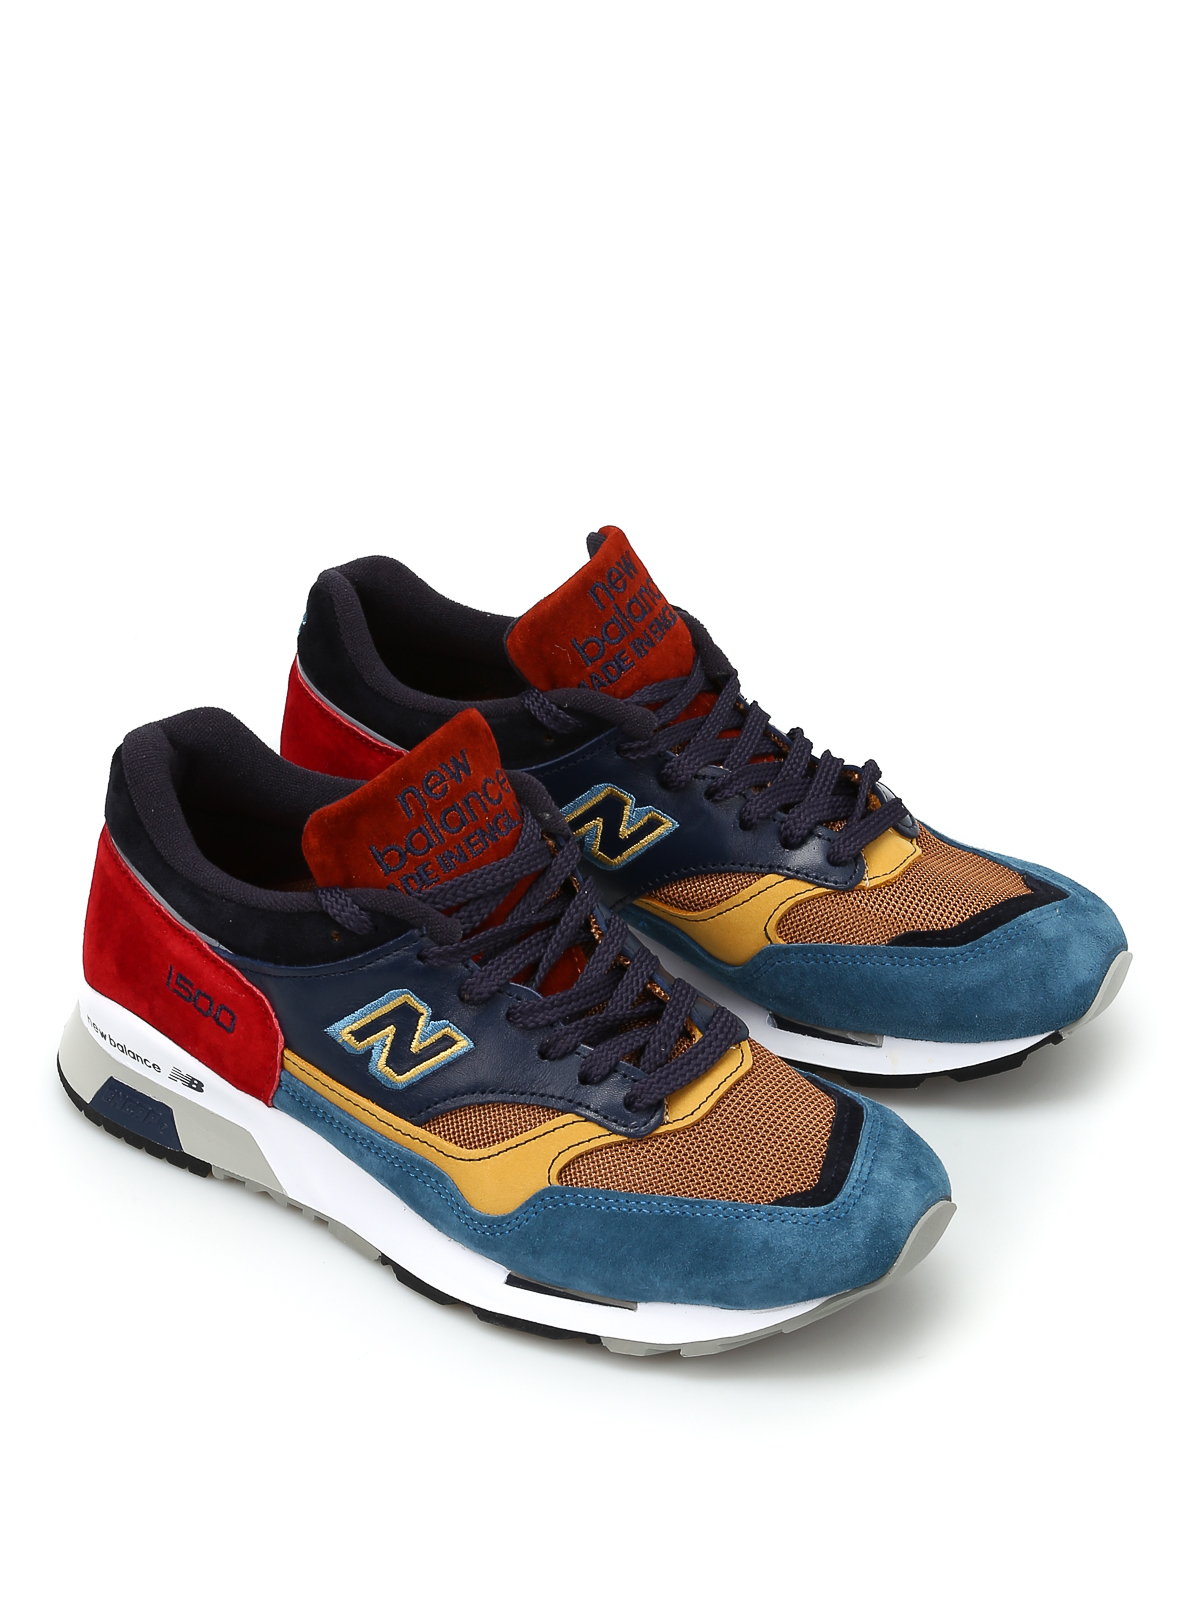 1500 Suede And Mesh Sneakers New Balance rnzSLv